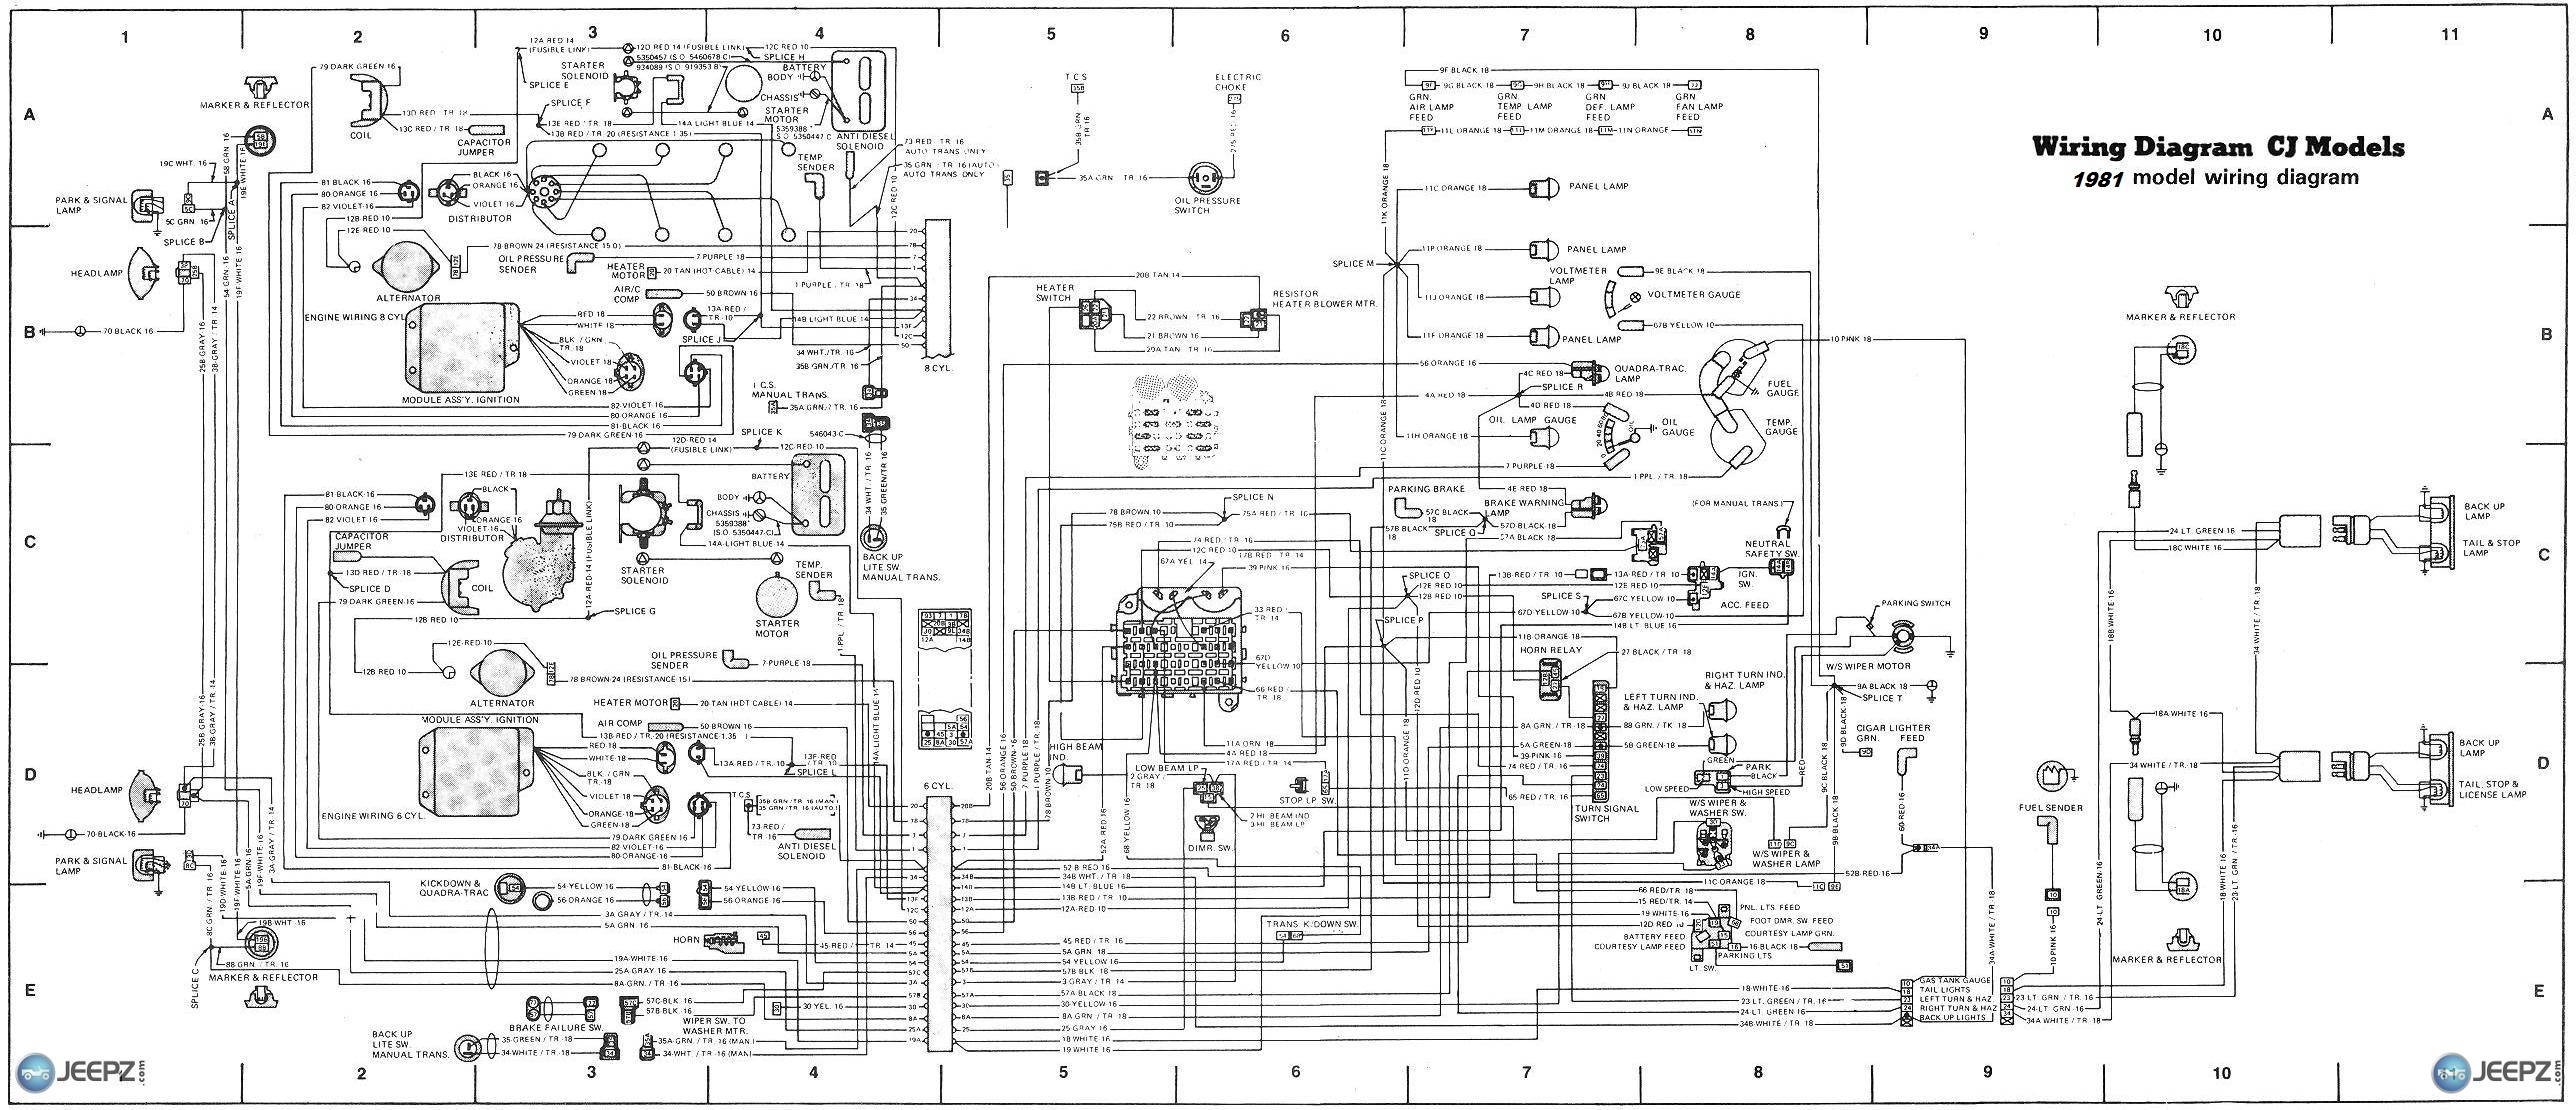 81 Jeep Cj7 Wiring - Wiring Diagram Networks | 1981 Corvette Headlight Wiring Diagram |  | Wiring Diagram Networks - blogger